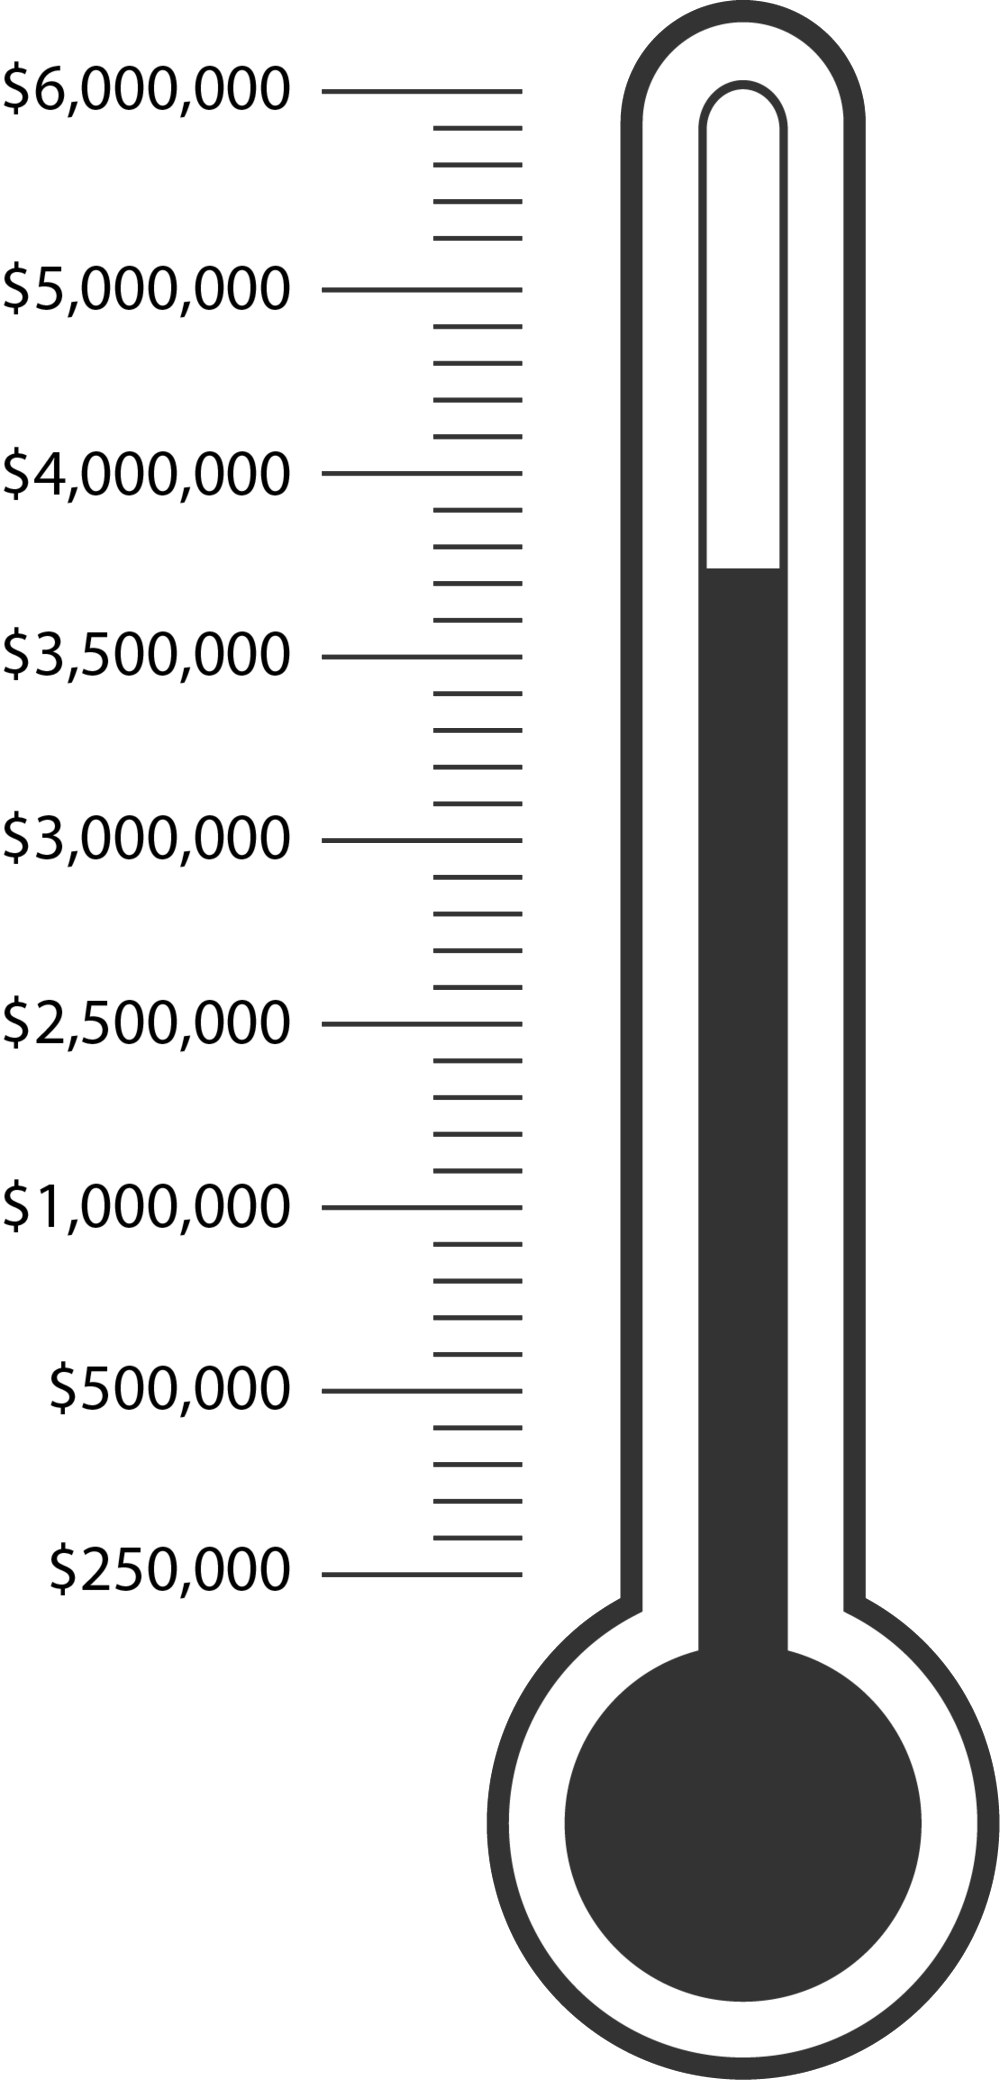 thermometer_black-with-notches.png